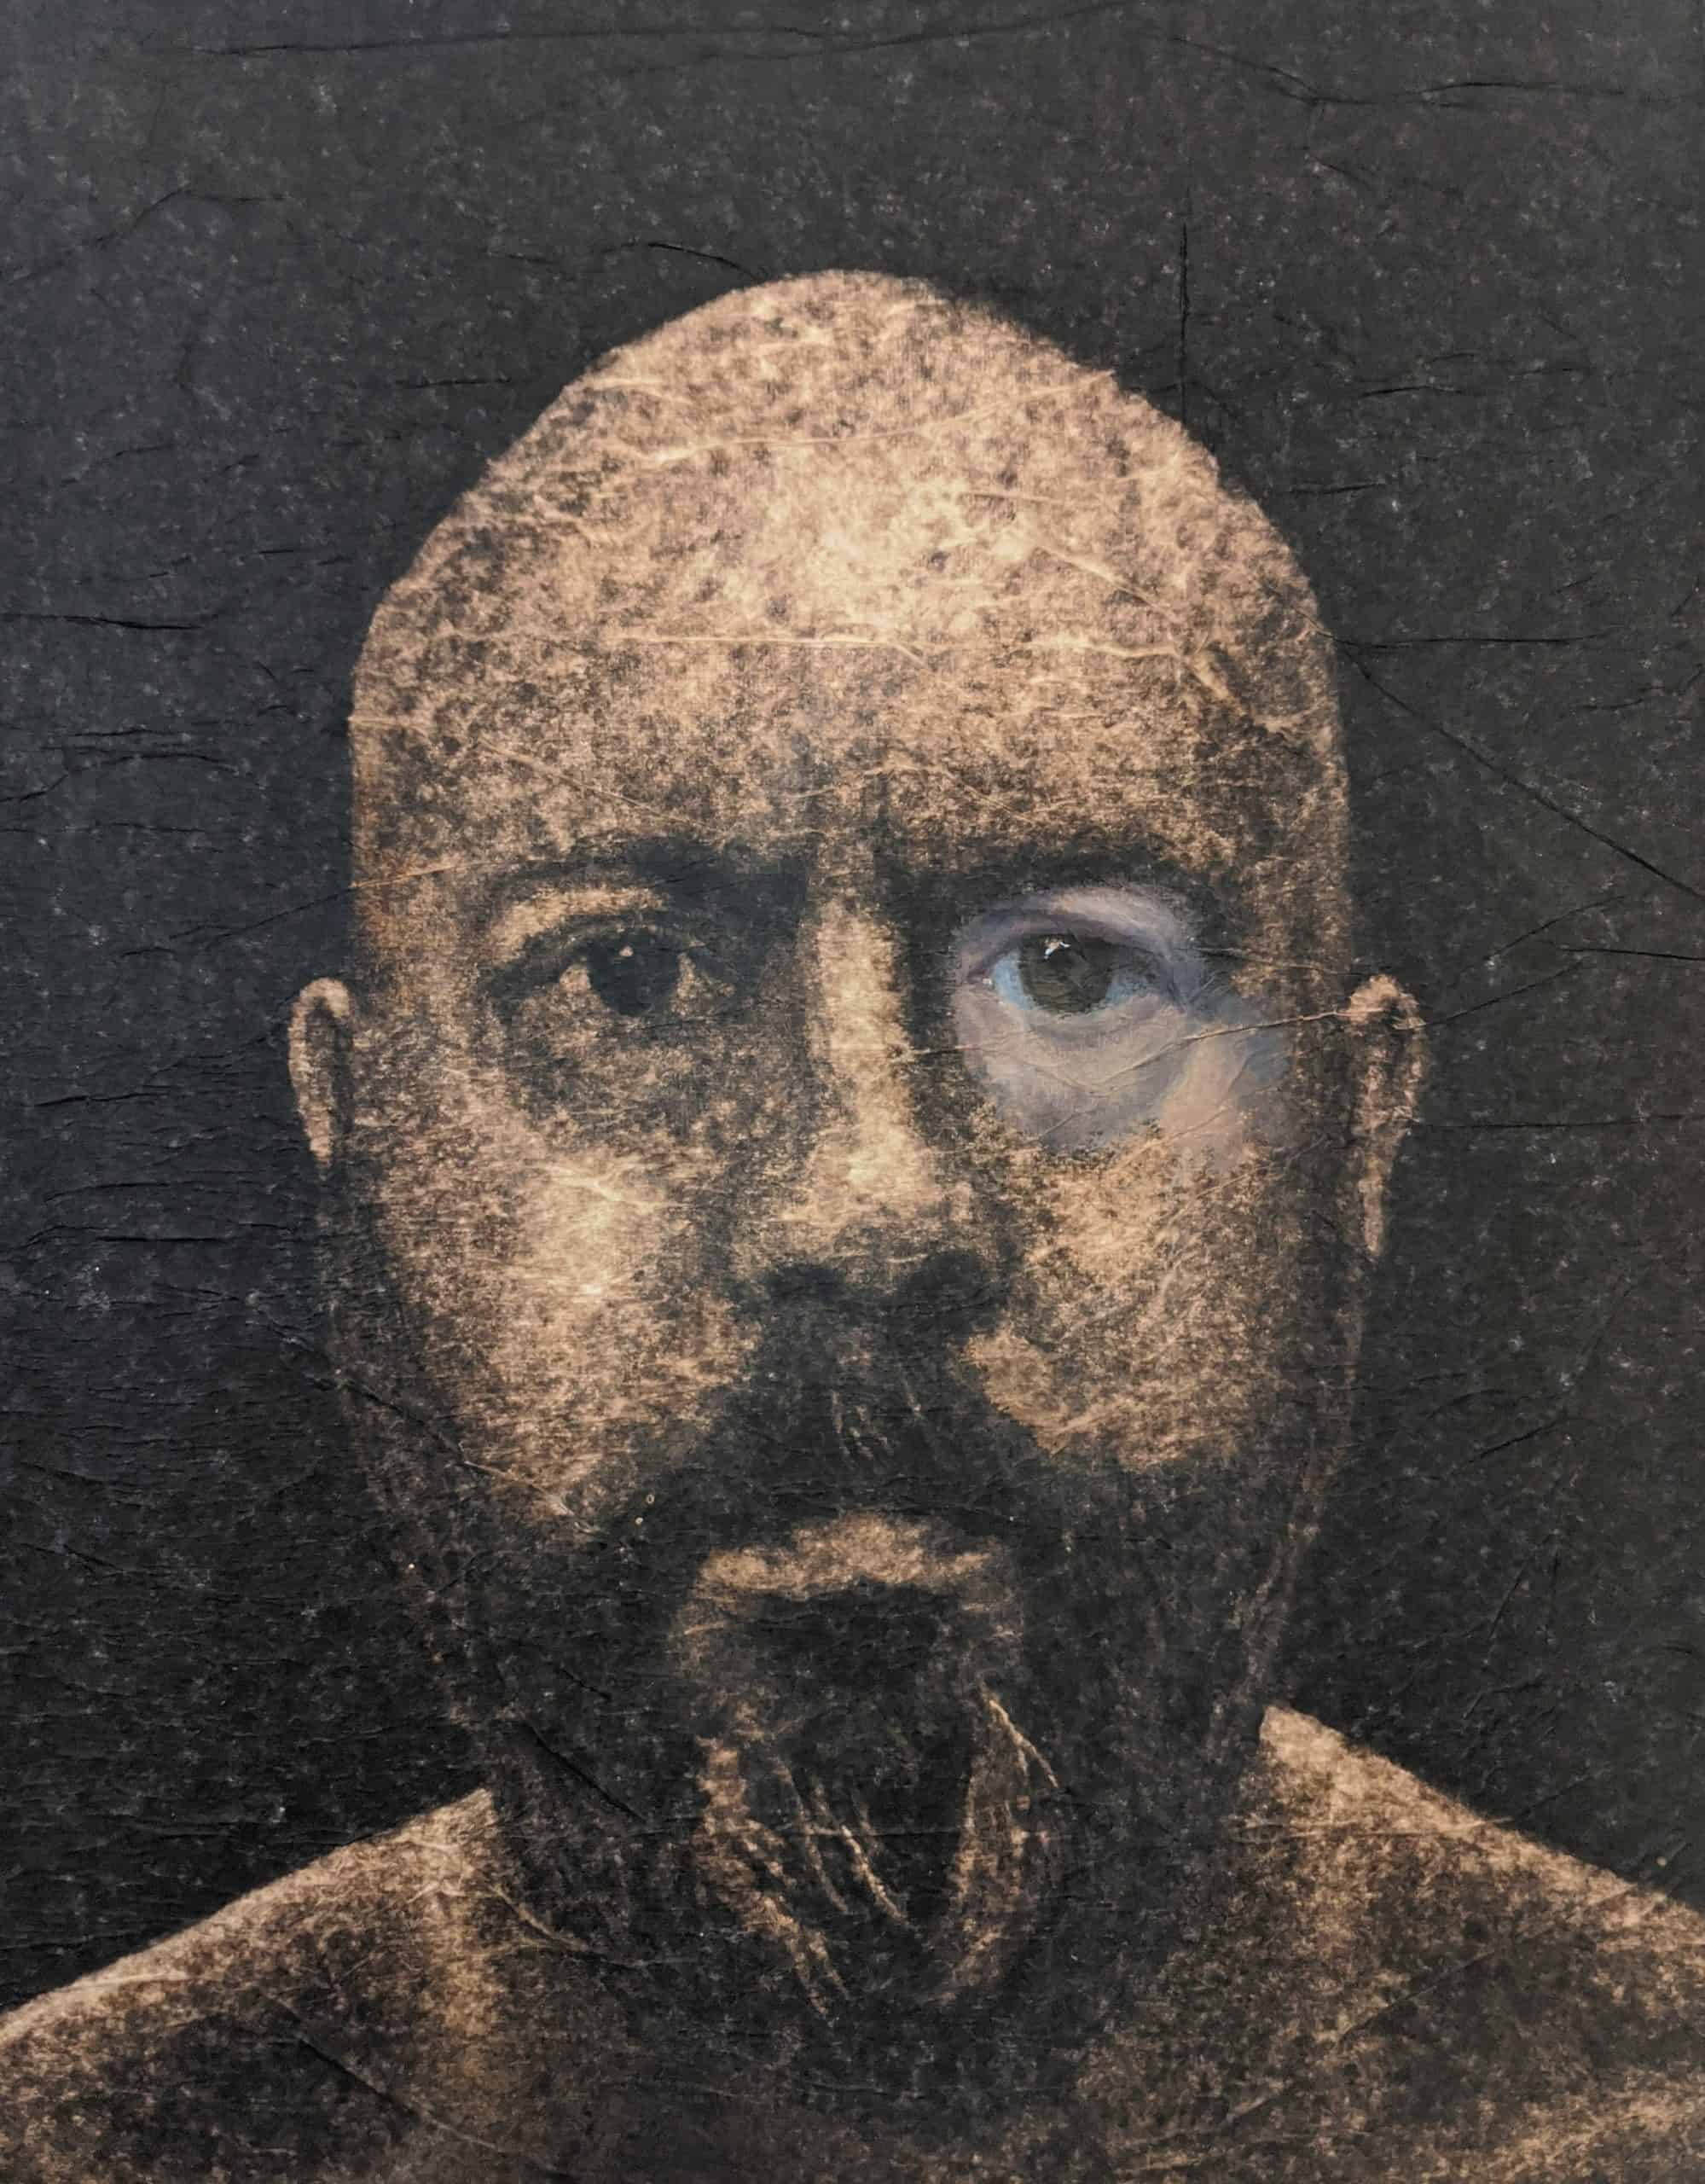 Self portrait from life, rendered in bleached black tissue paper and oil paint. I intended to depict the flesh as a form of make-up or concealment.